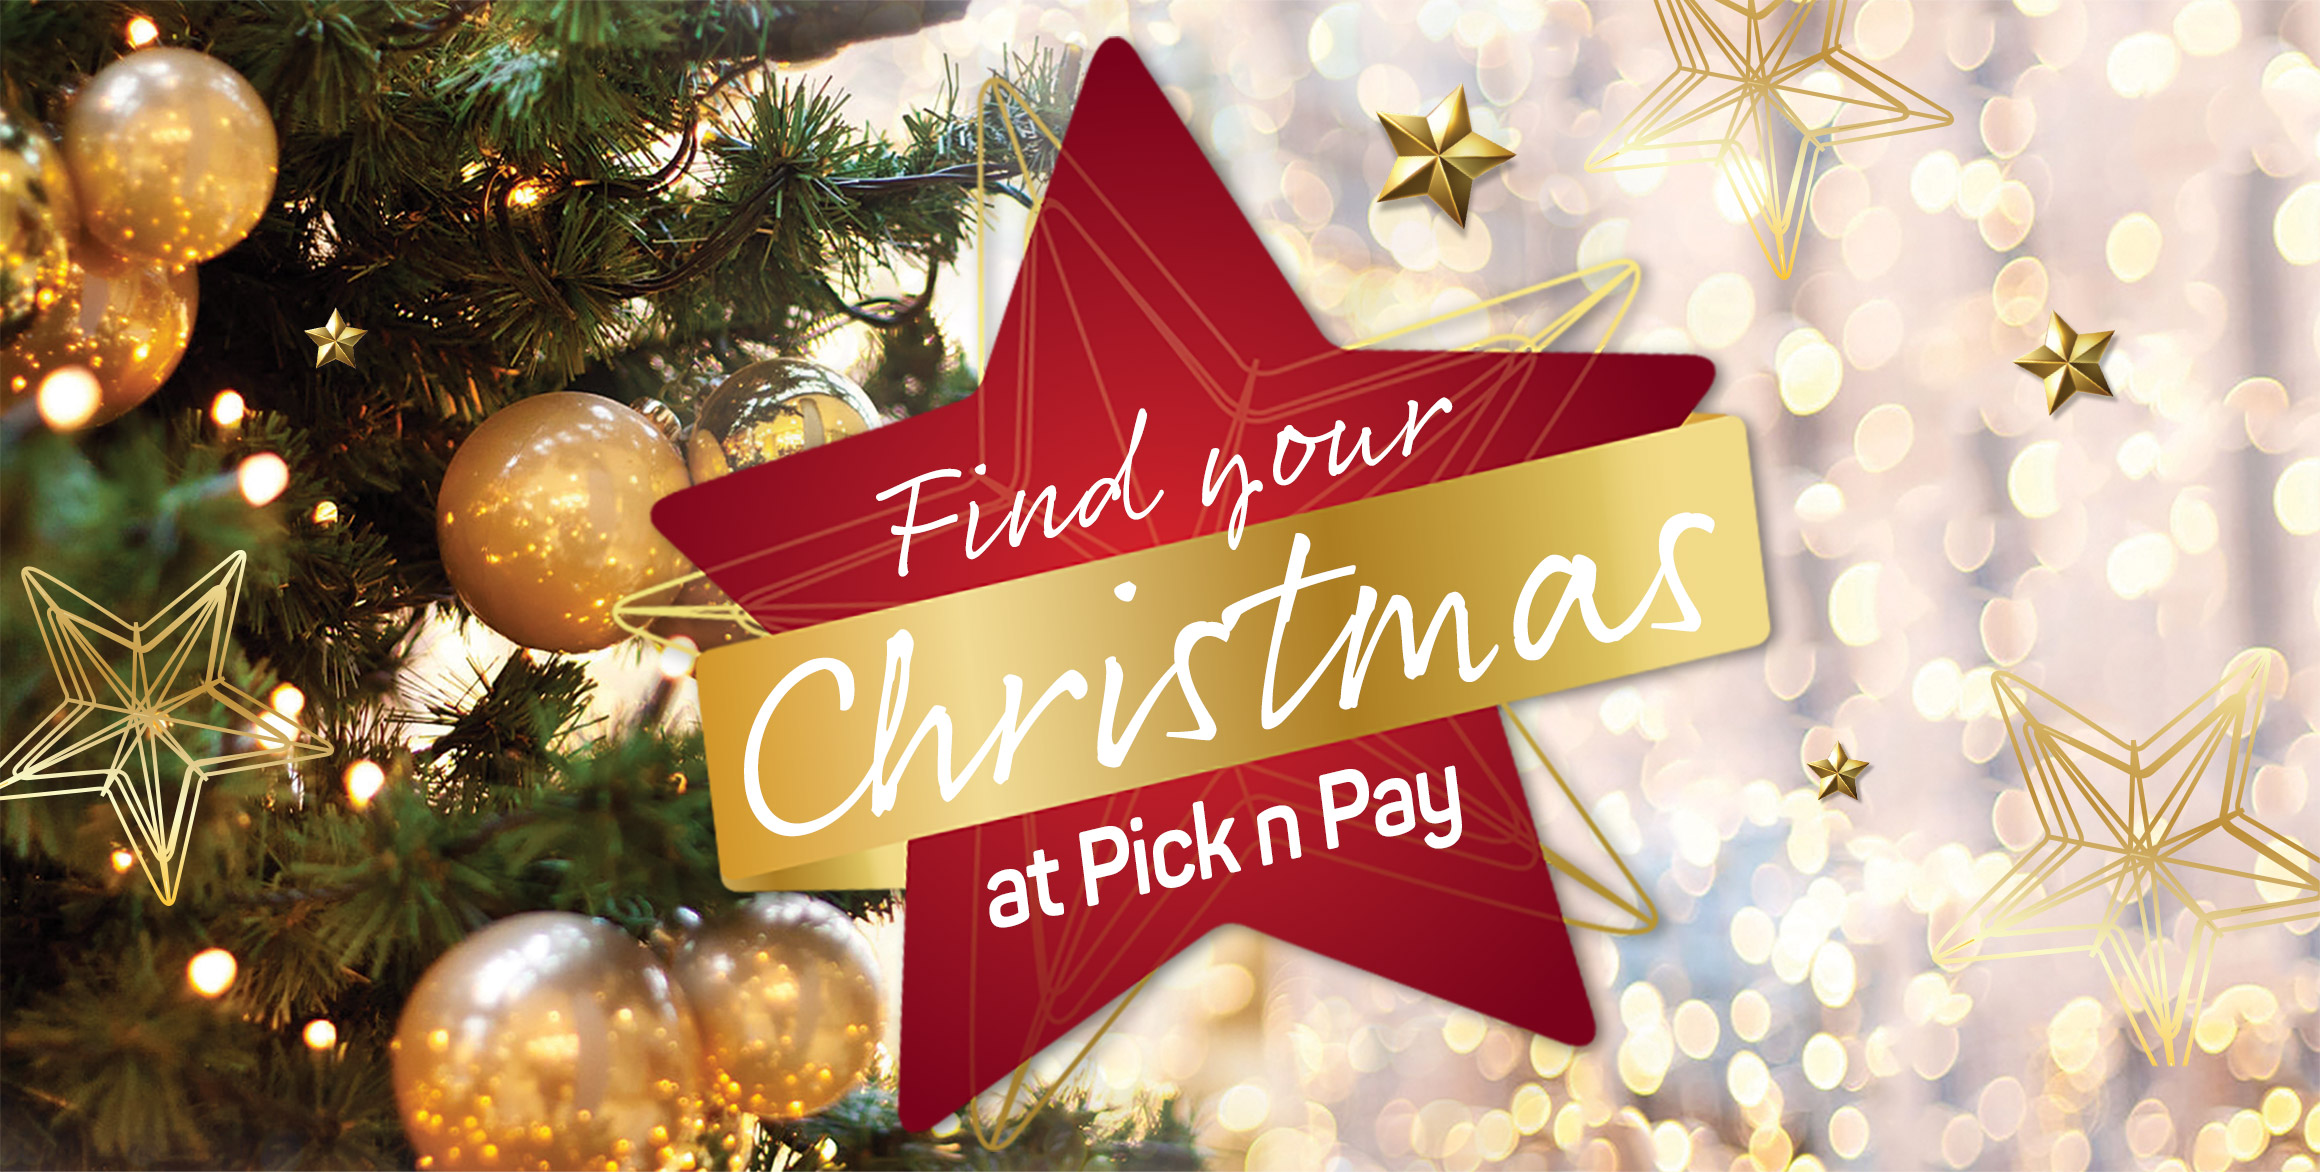 Find your Christmas at Pick n Pay